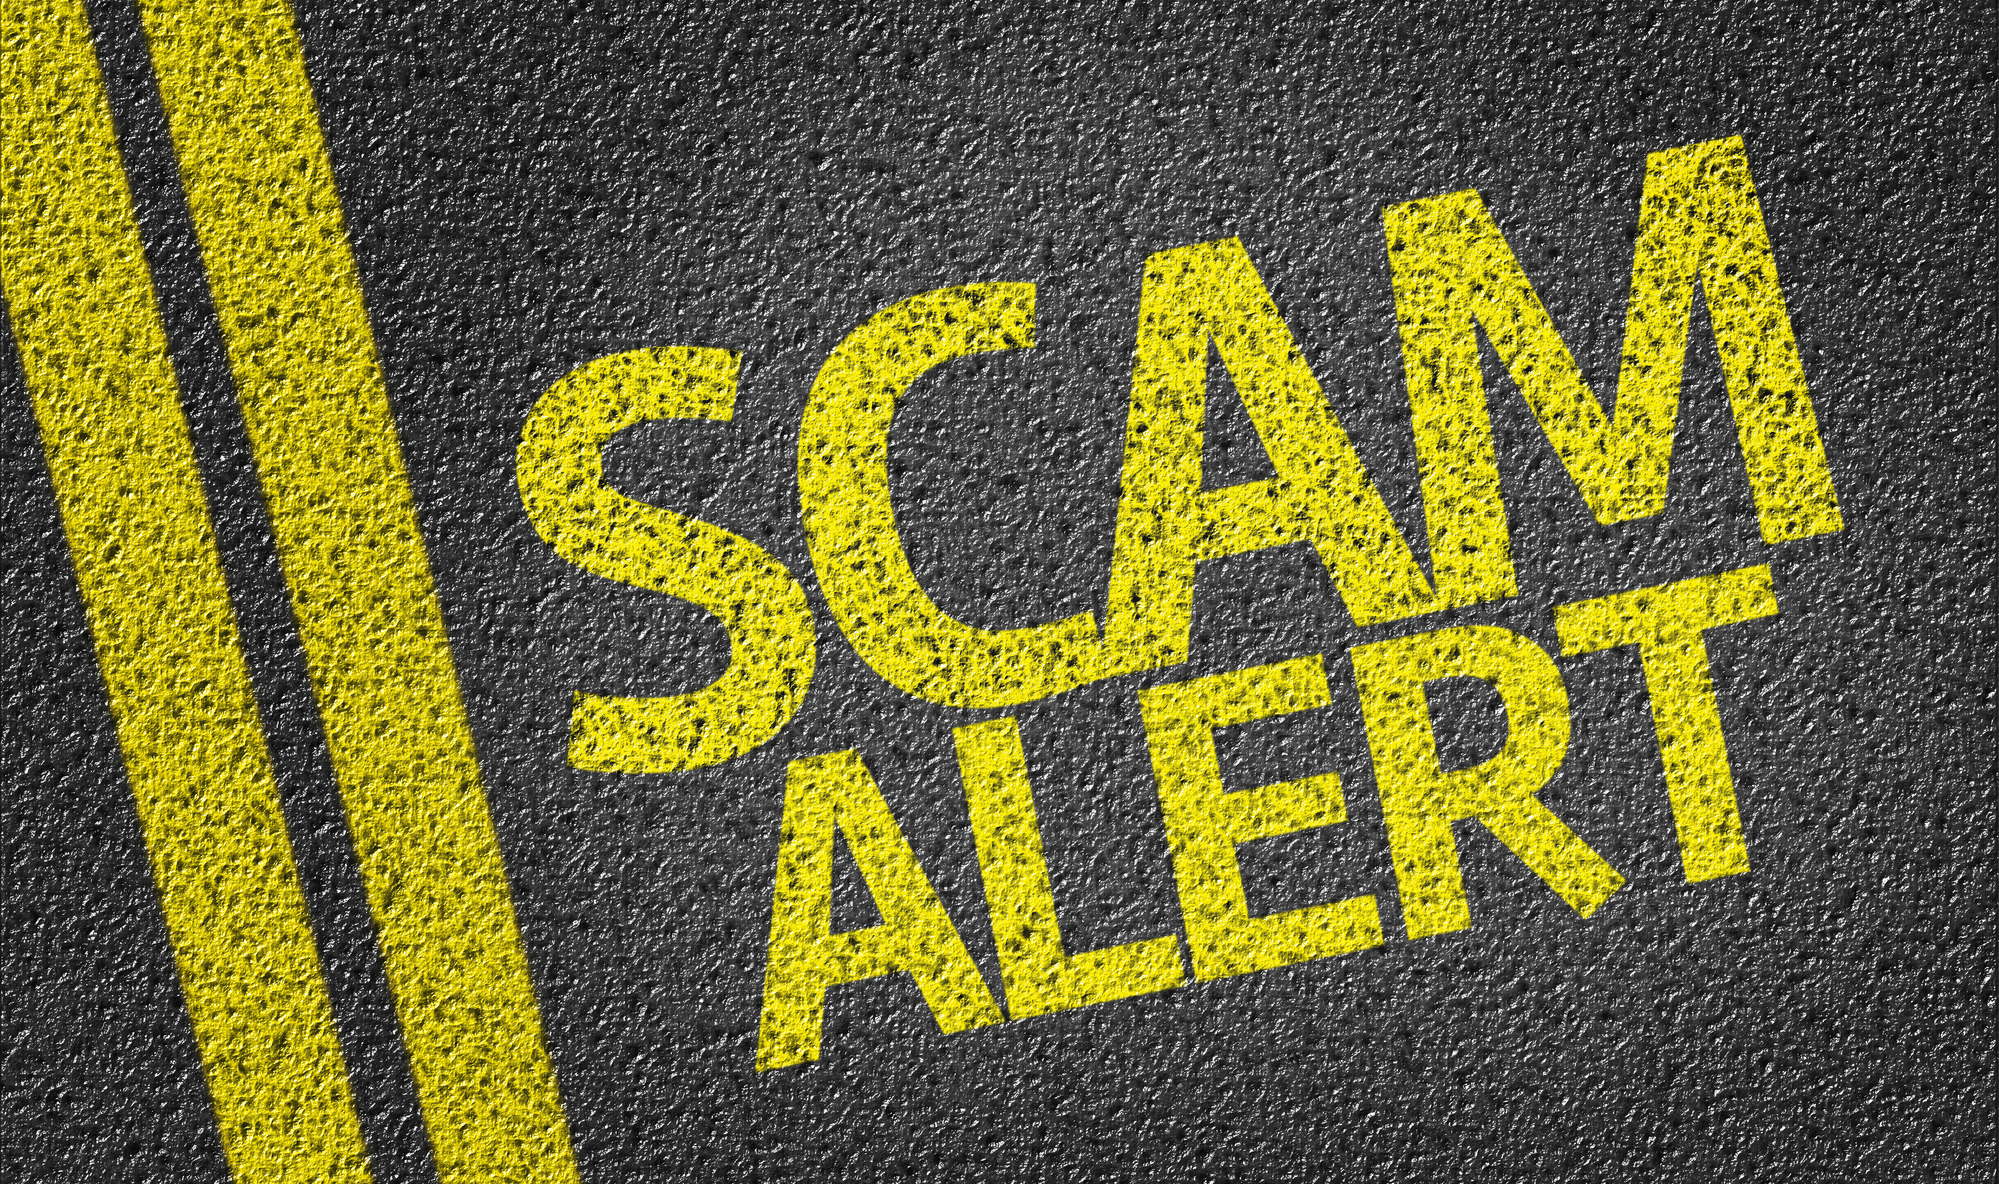 Scamming on Amazon: Watch Out, Seller